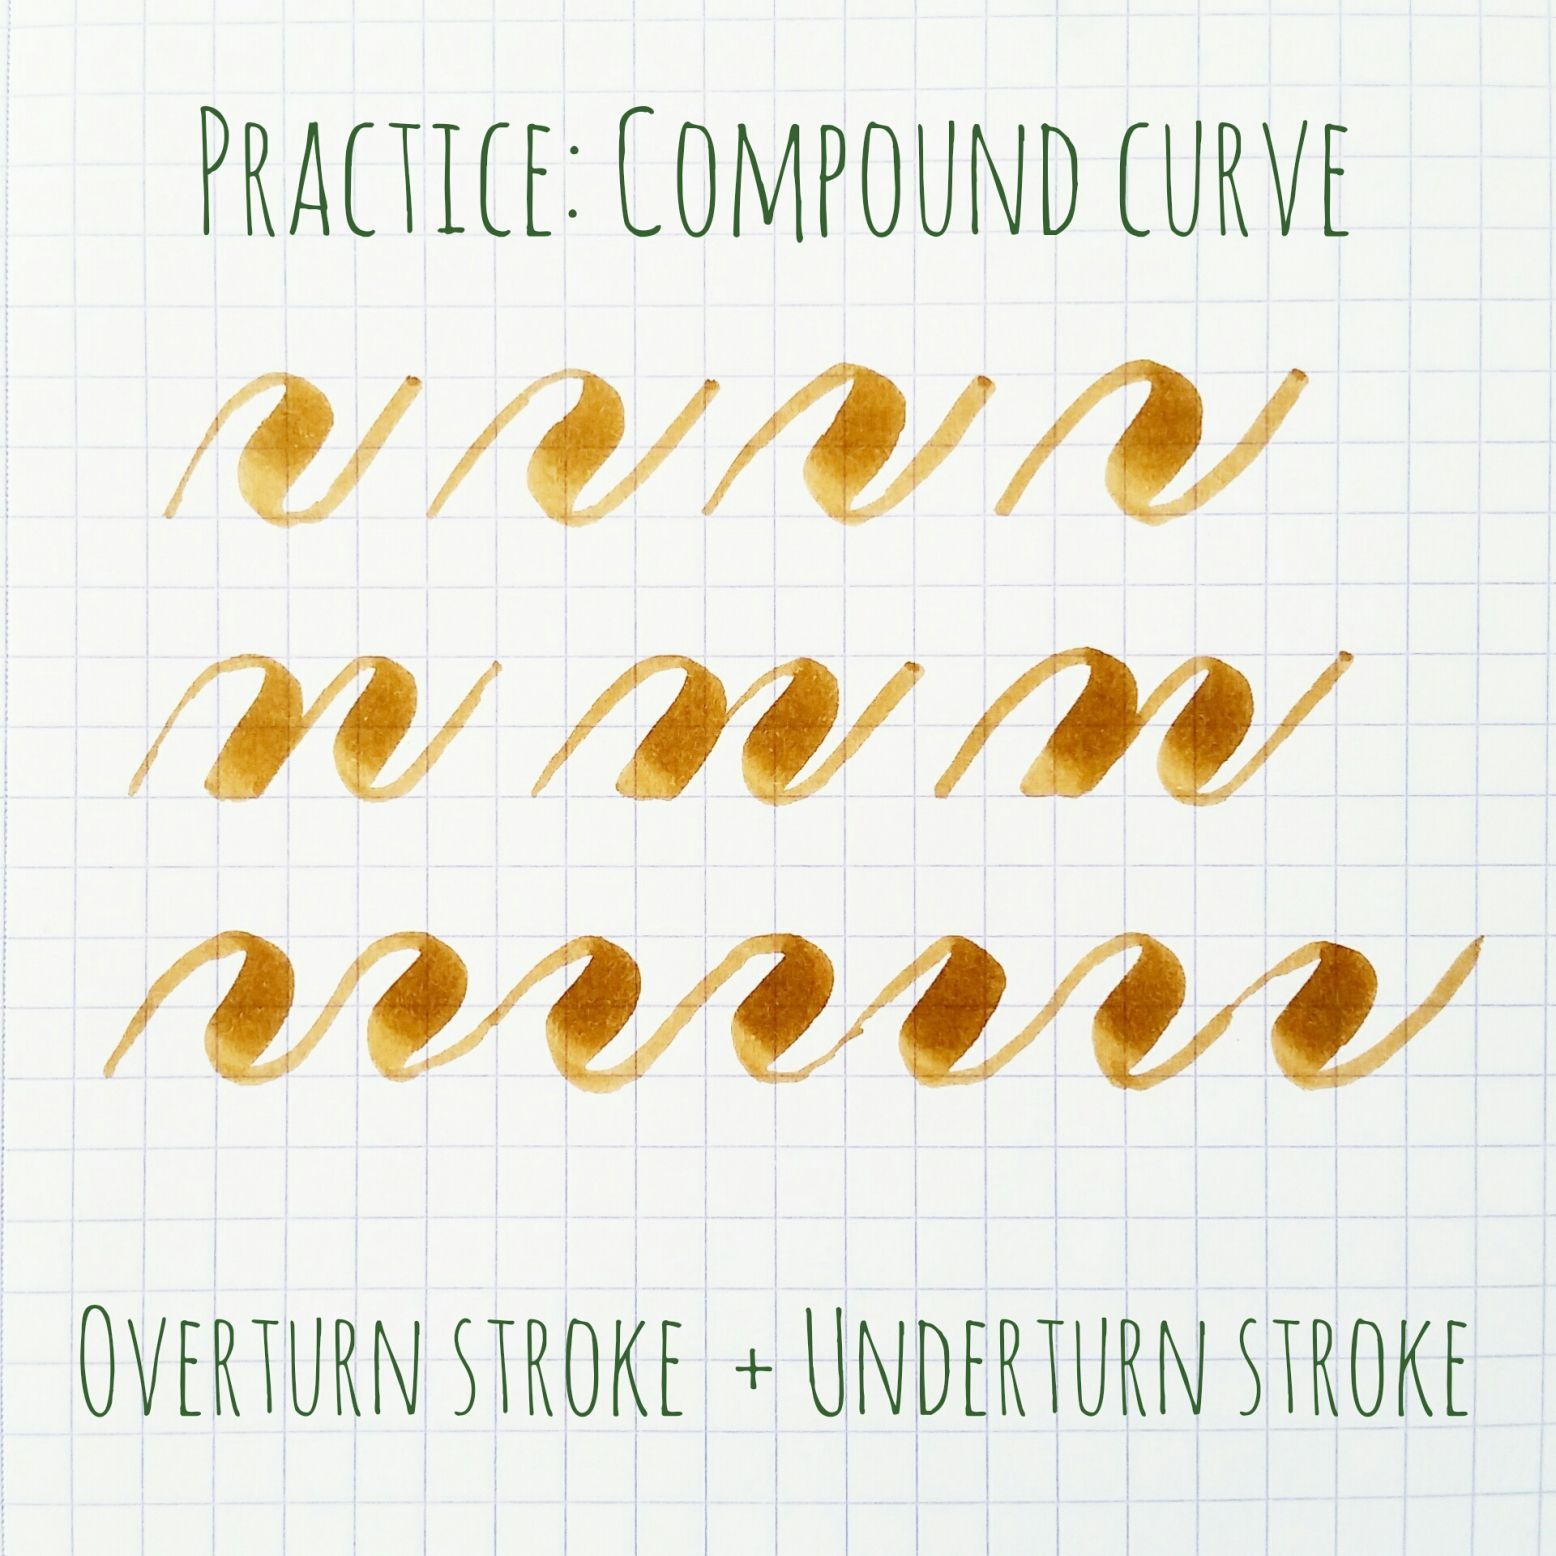 Basic Brush Calligraphy Strokes The Compound Curve